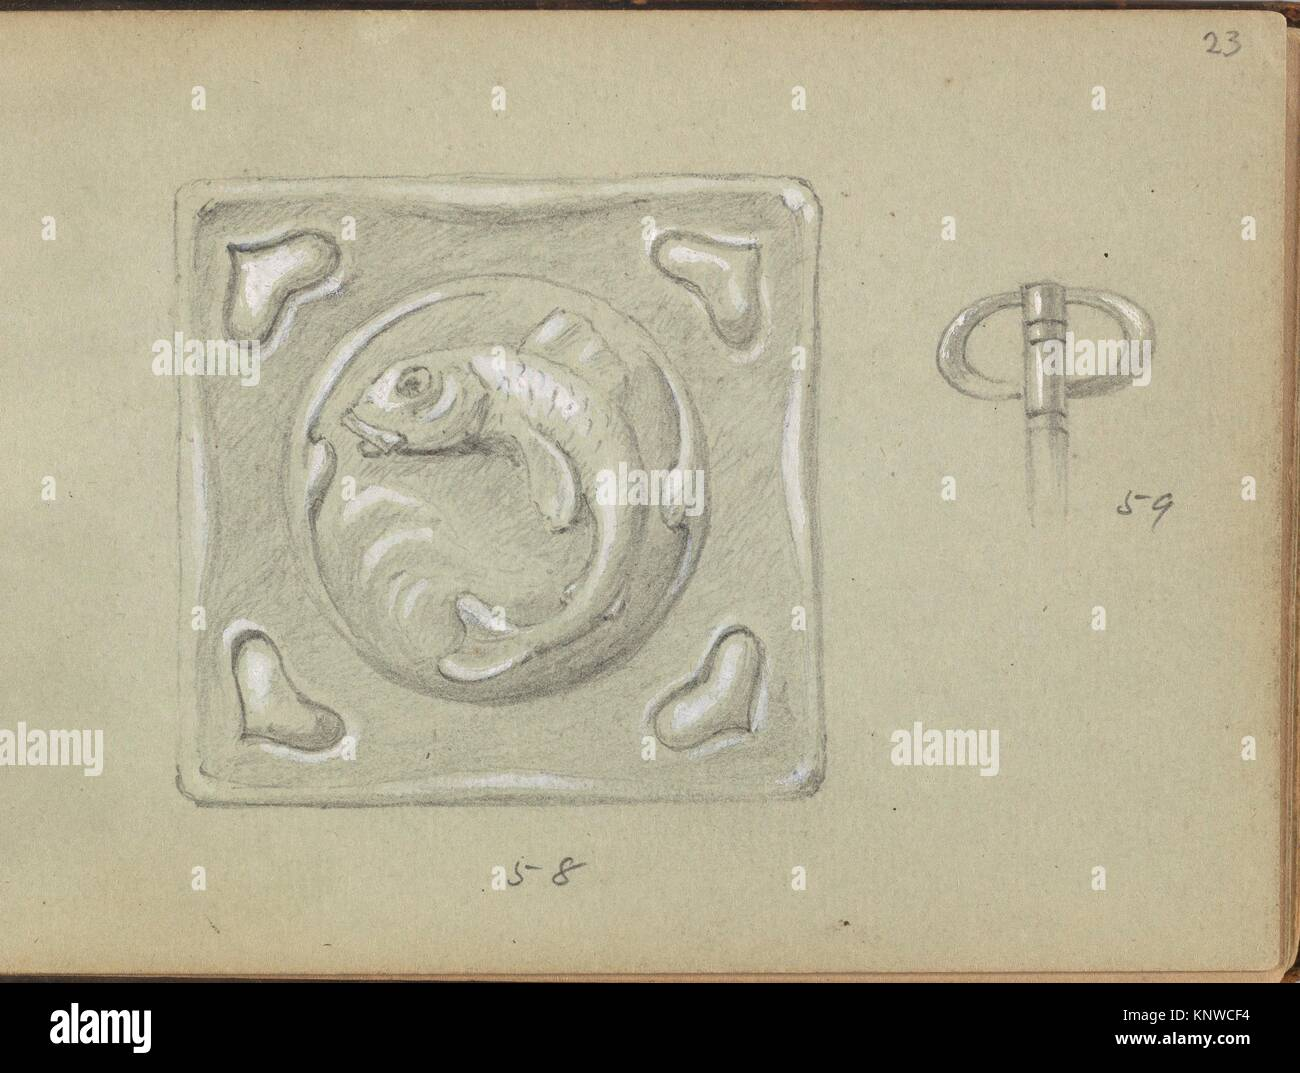 Design for a Decorative (Key?) Plate and a Key Grip. Artist: Edgar Gilstrap Simpson (British, 1867-1945 (presumed)); - Stock Image